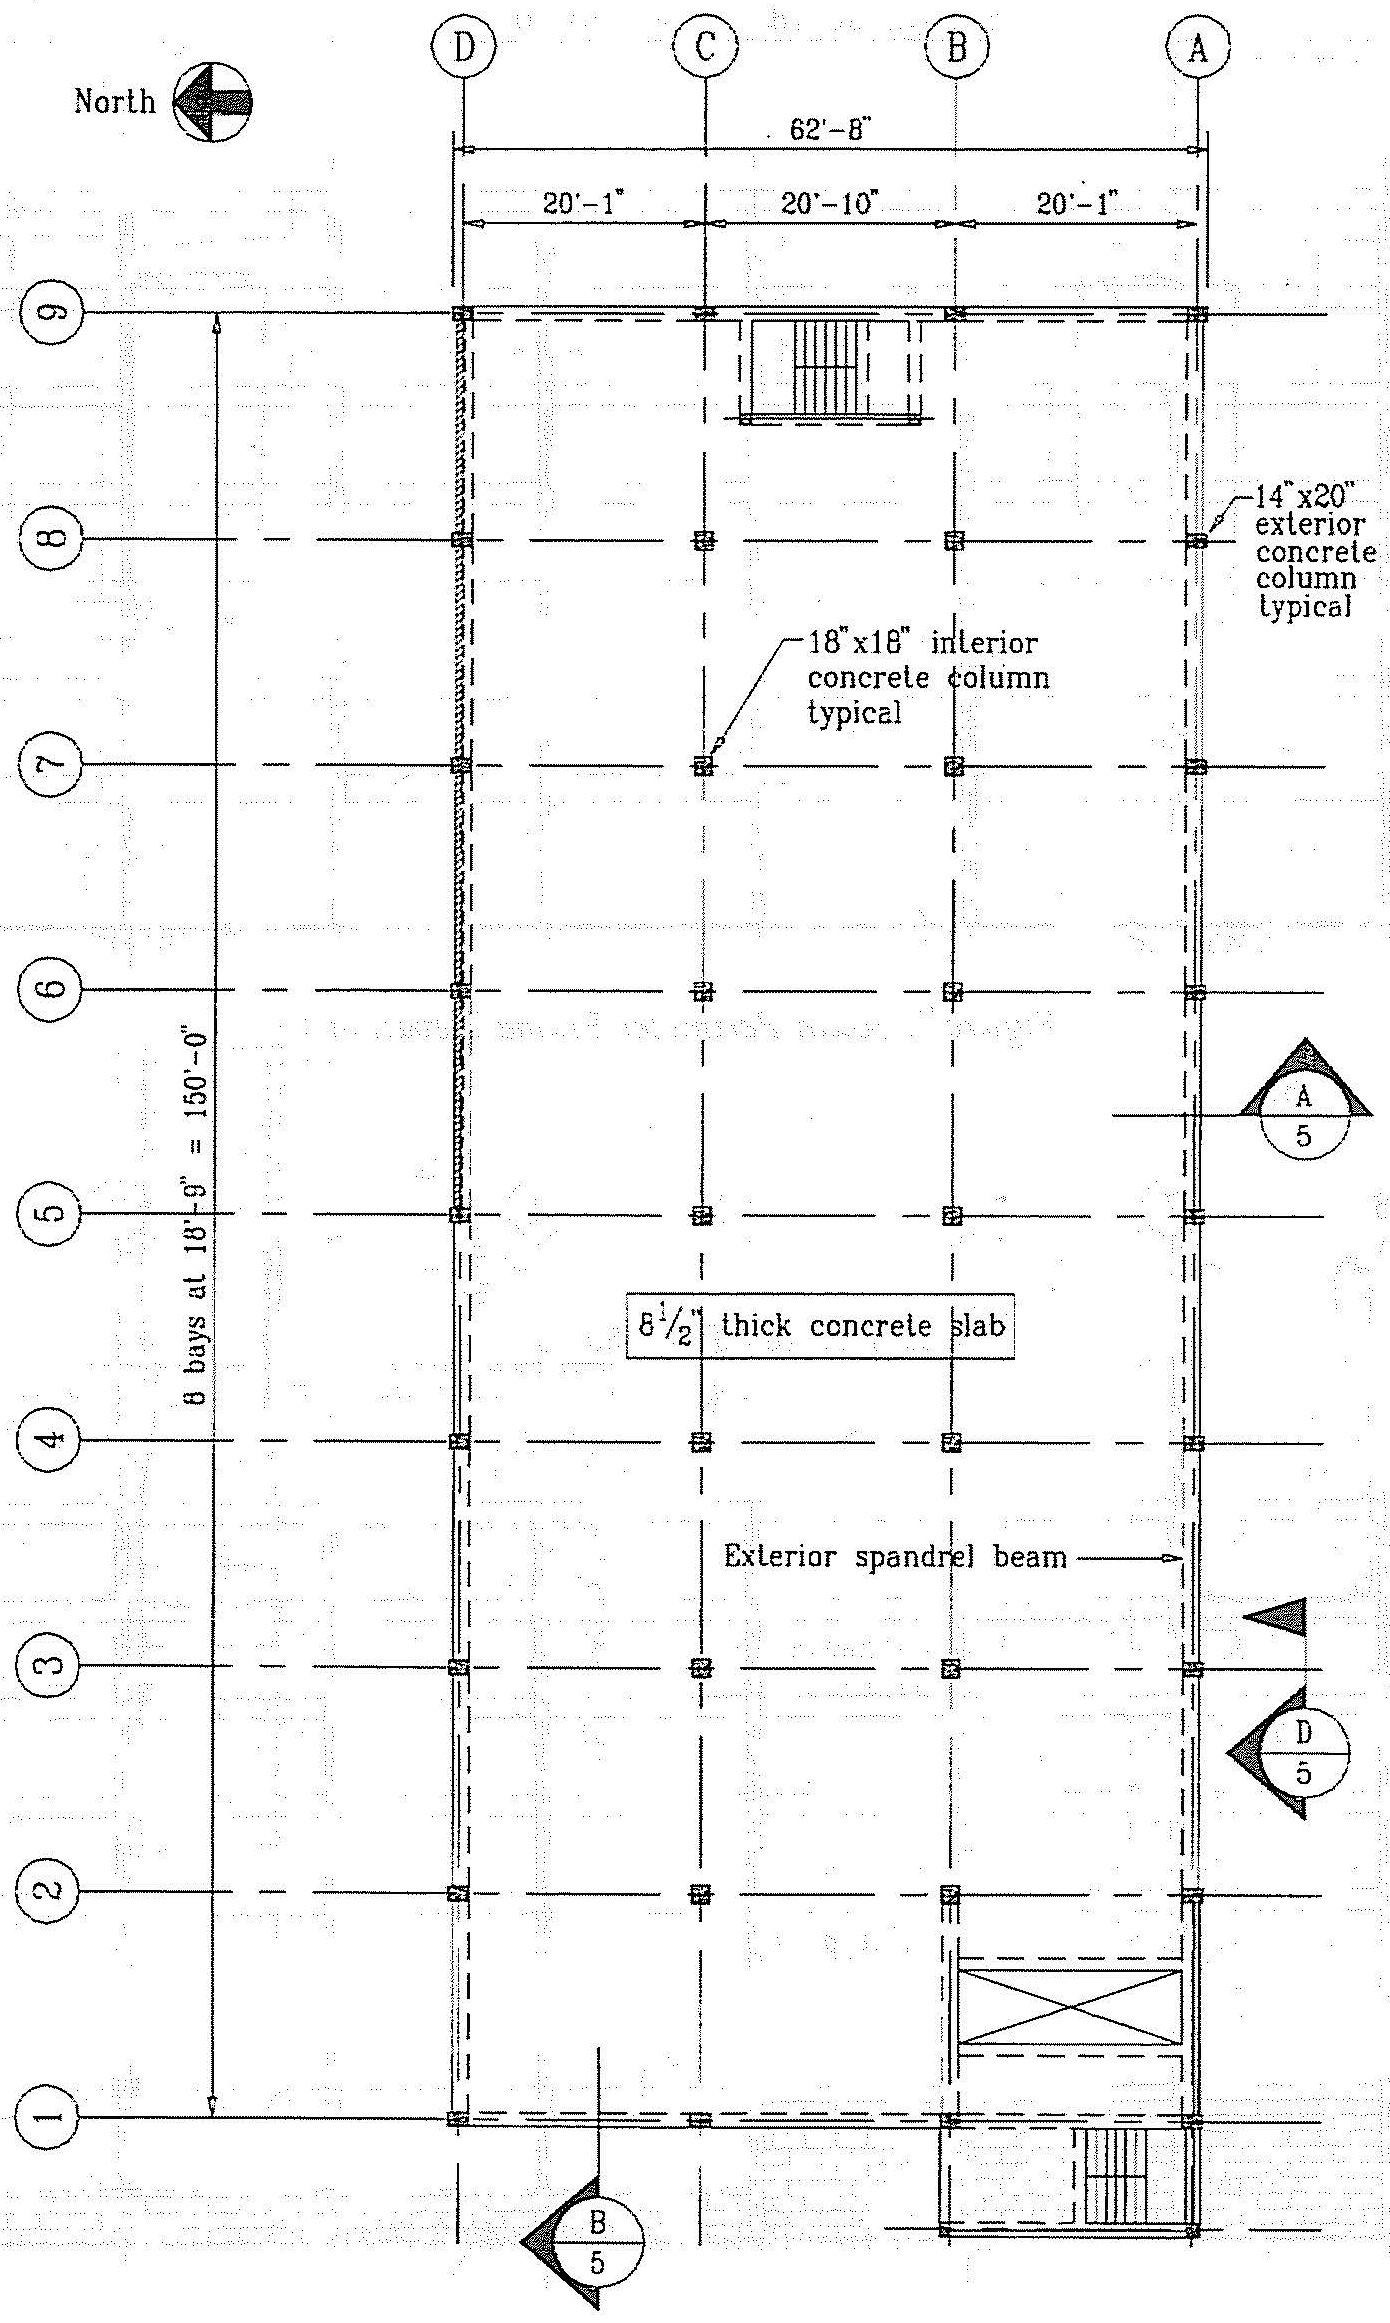 Typical floor framing plan. (SSC, 1994)